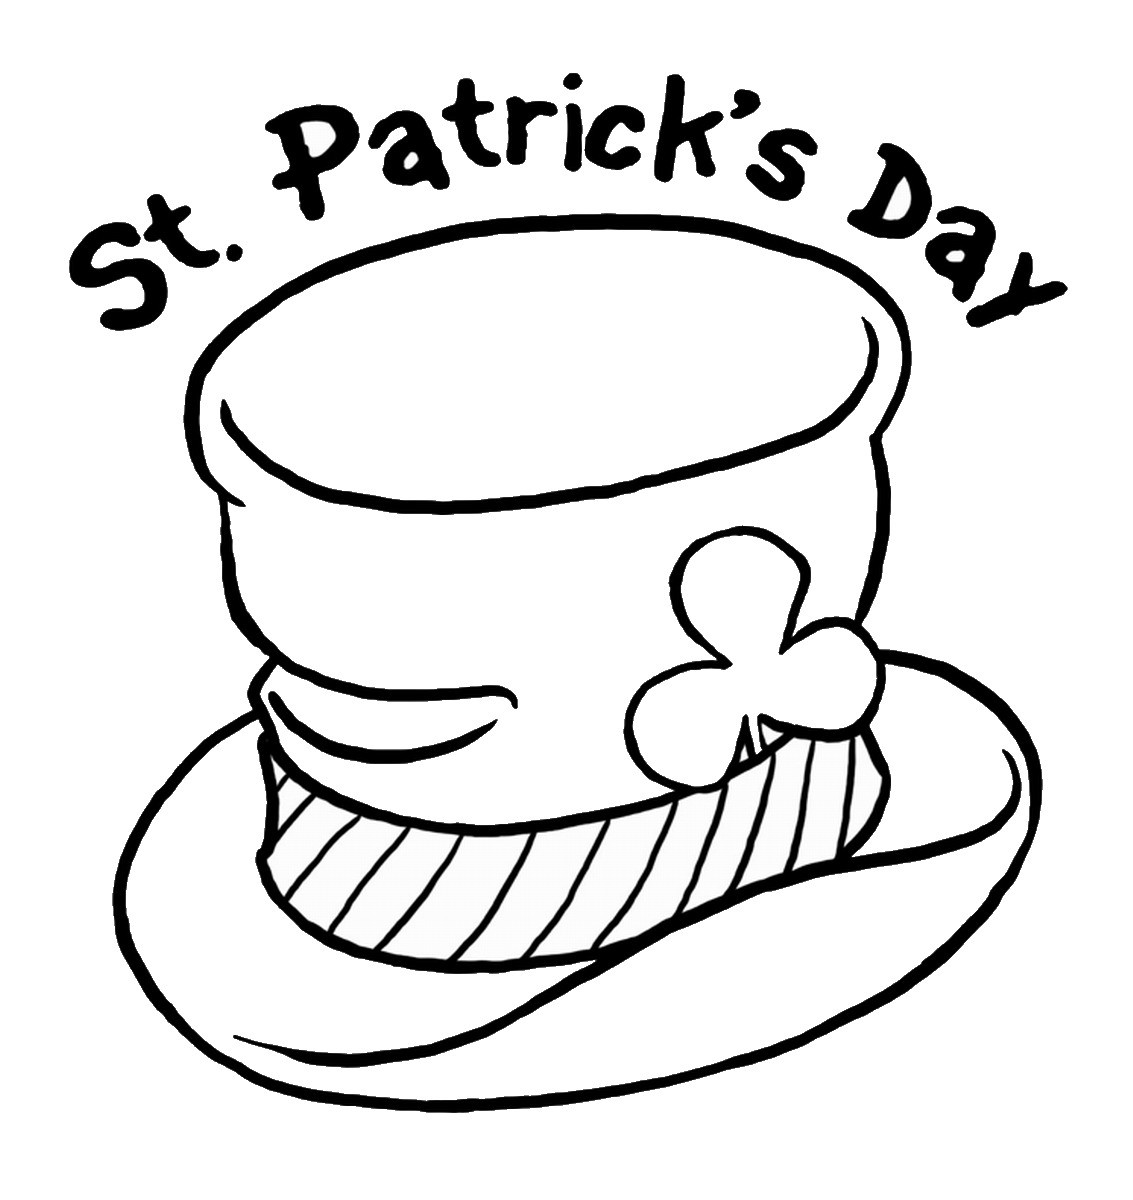 St Patrick'S Day Coloring Sheet  St Patrick s Day Coloring Pages for childrens printable